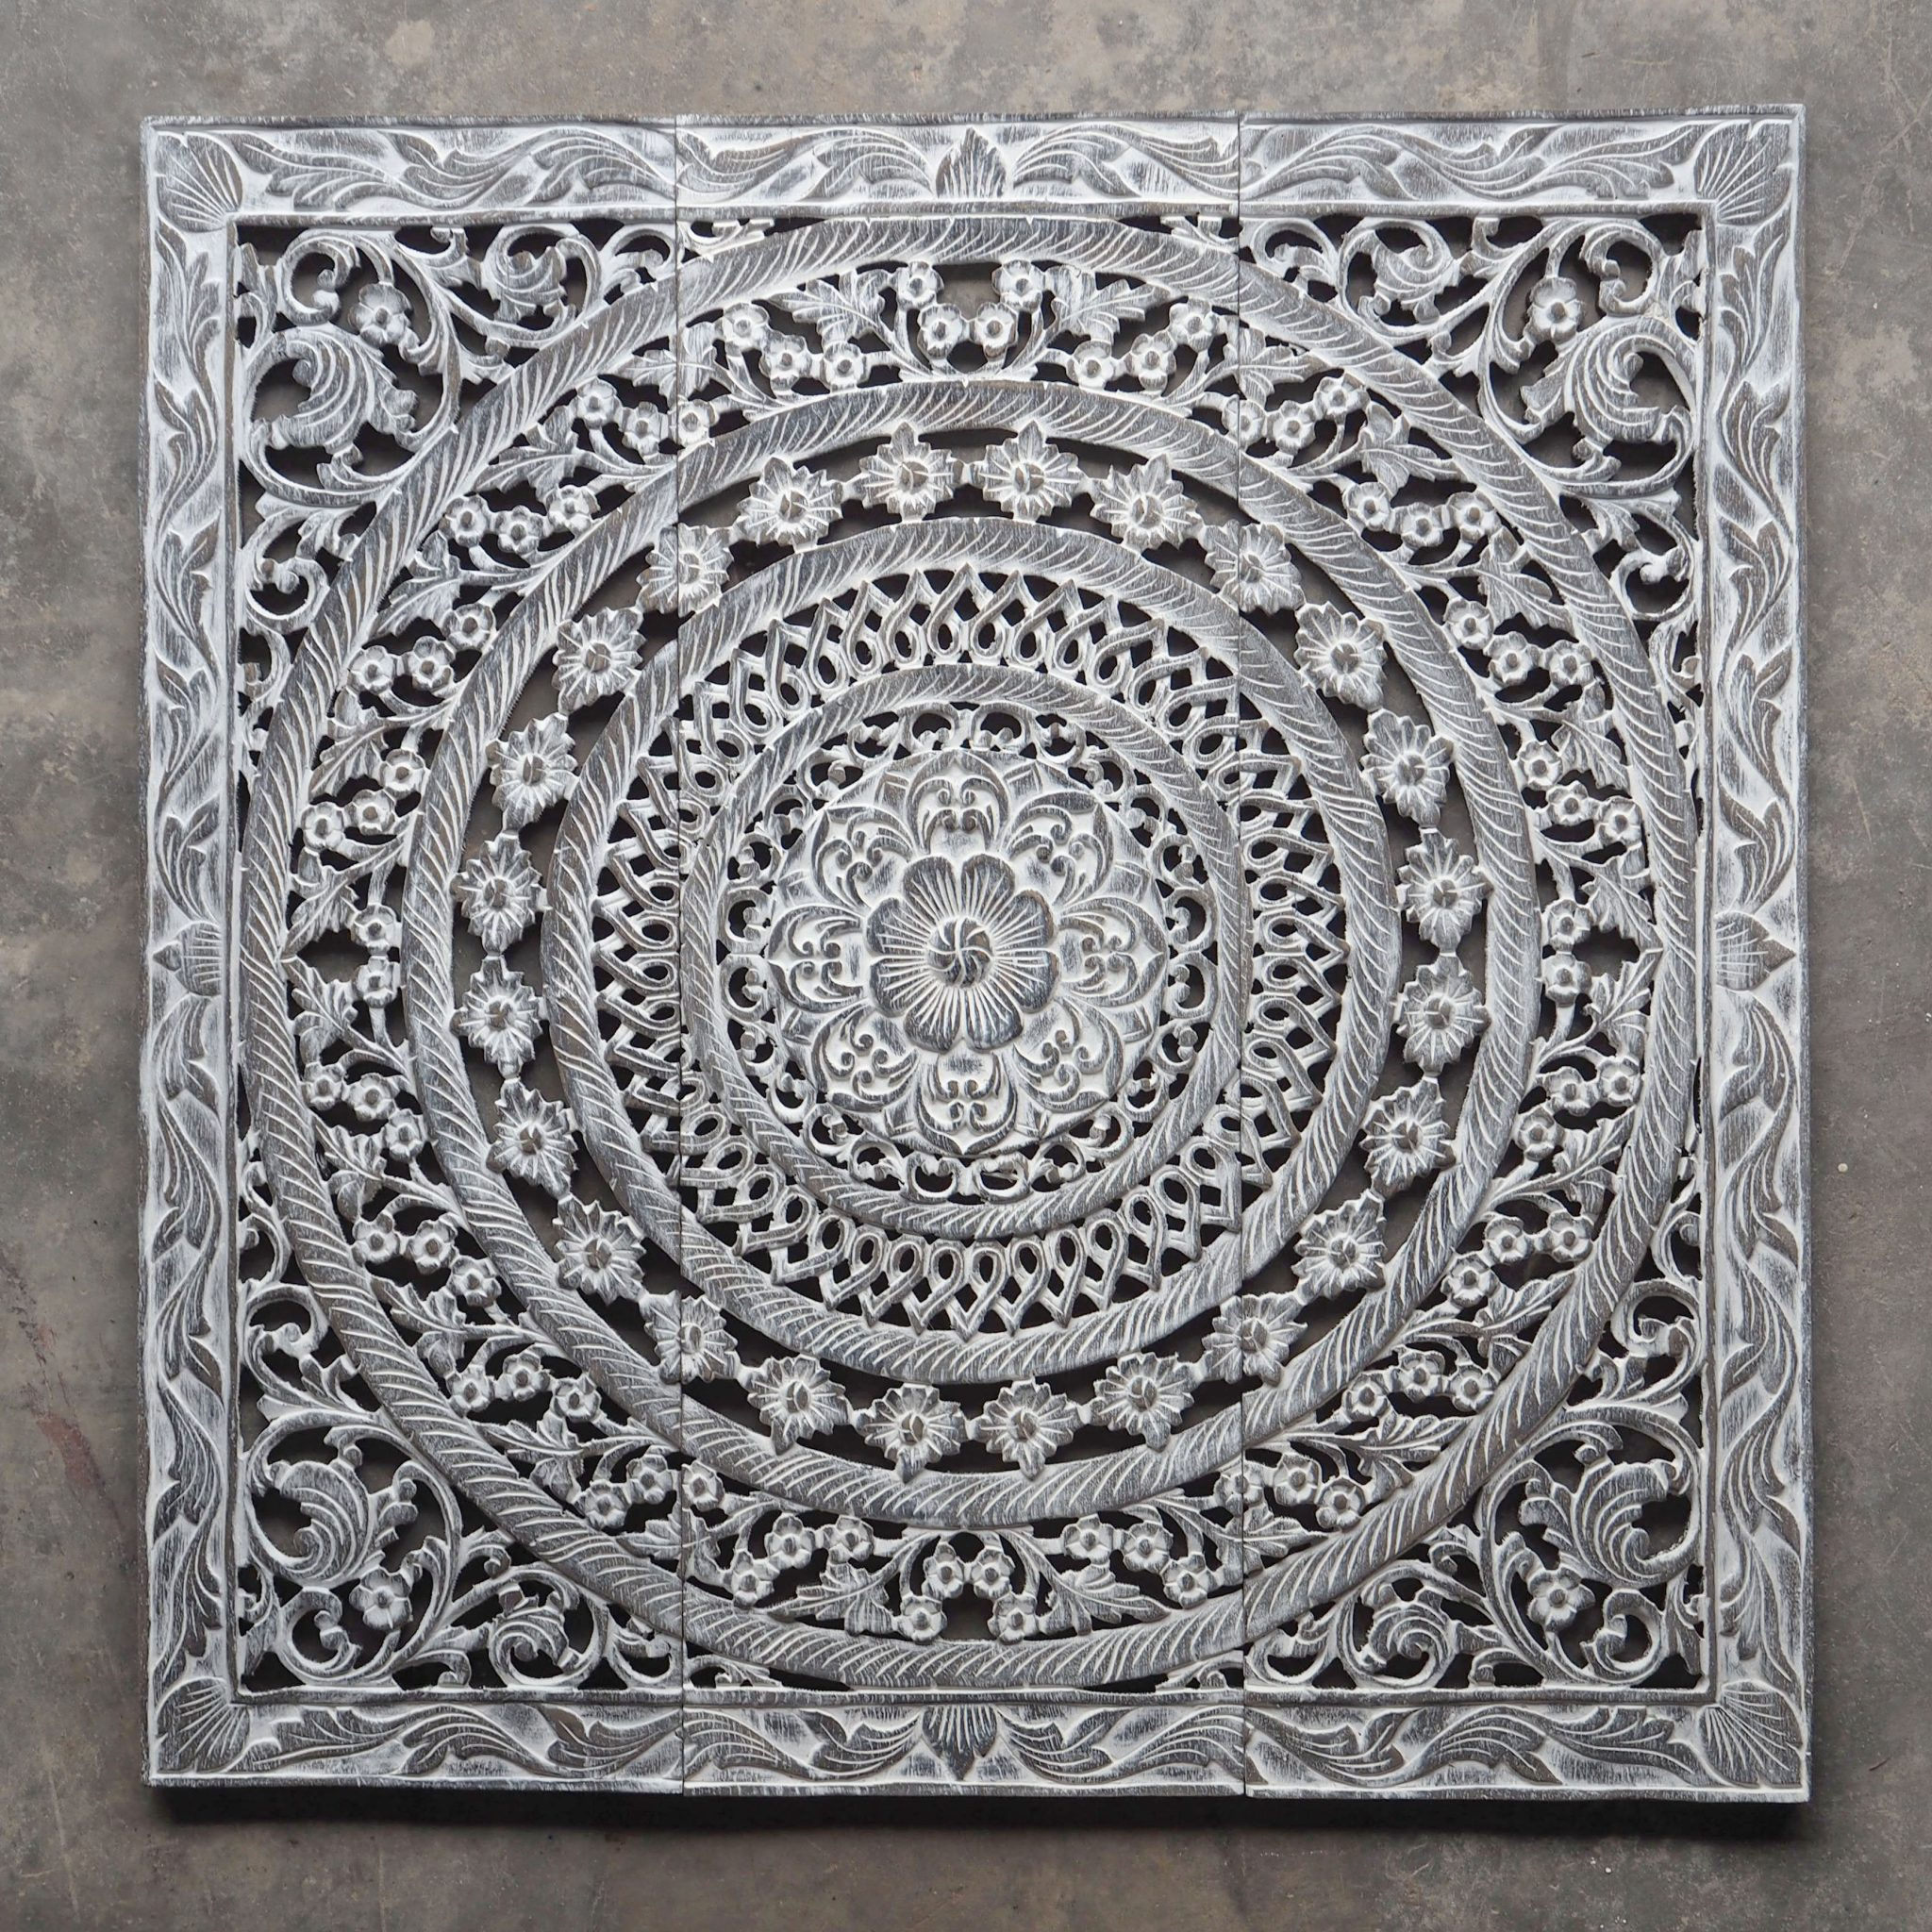 Carved Wood Wall Hanging Buy Moroccan Decent Wood Carving Wall Art Hanging Online